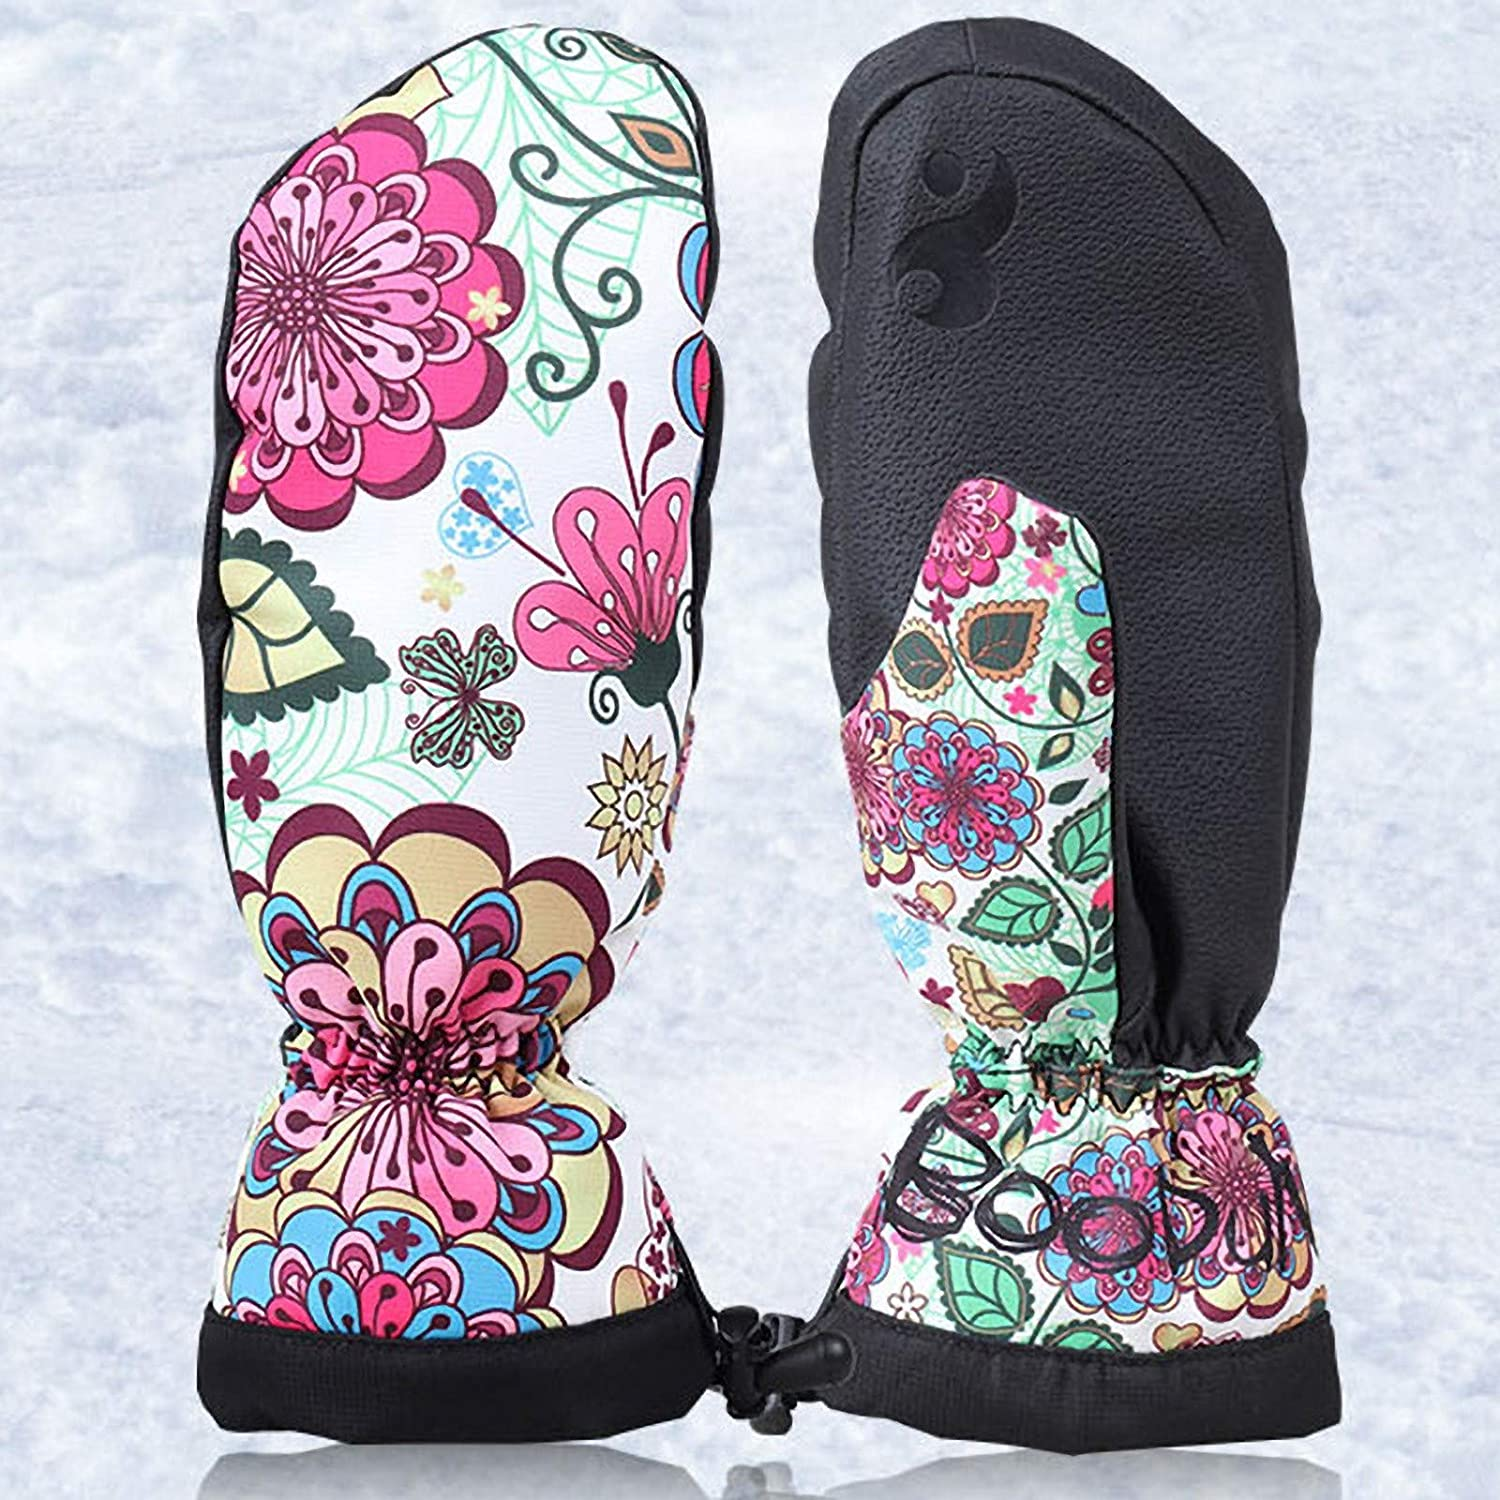 Men's And Women's Gloves Protect You And Your Loved One From The Cold Fashion/Prom/Warm/Bicycle Gloves